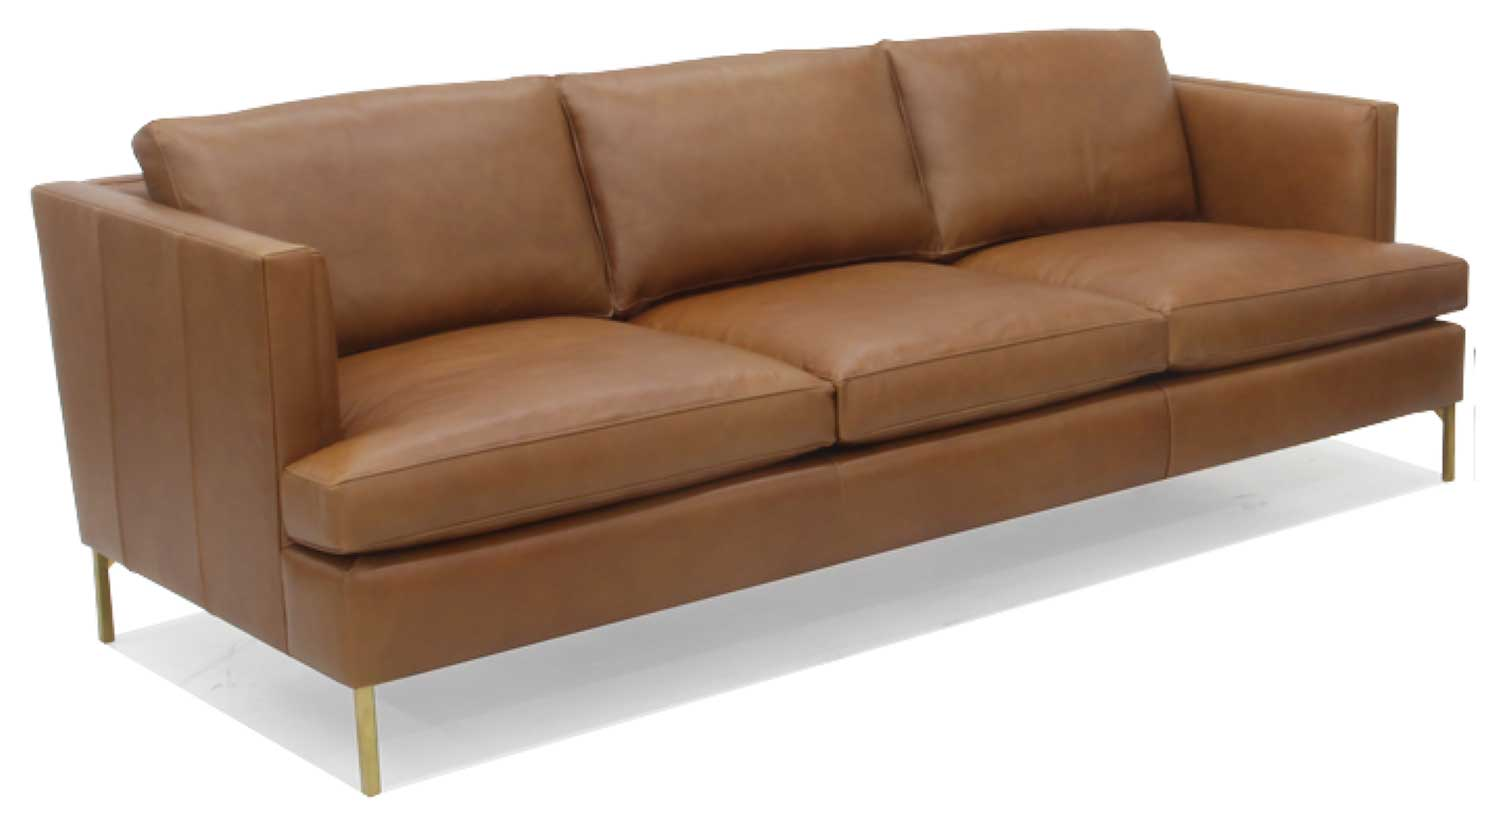 Tremendous Circle Furniture Concord Sofa Ocoug Best Dining Table And Chair Ideas Images Ocougorg